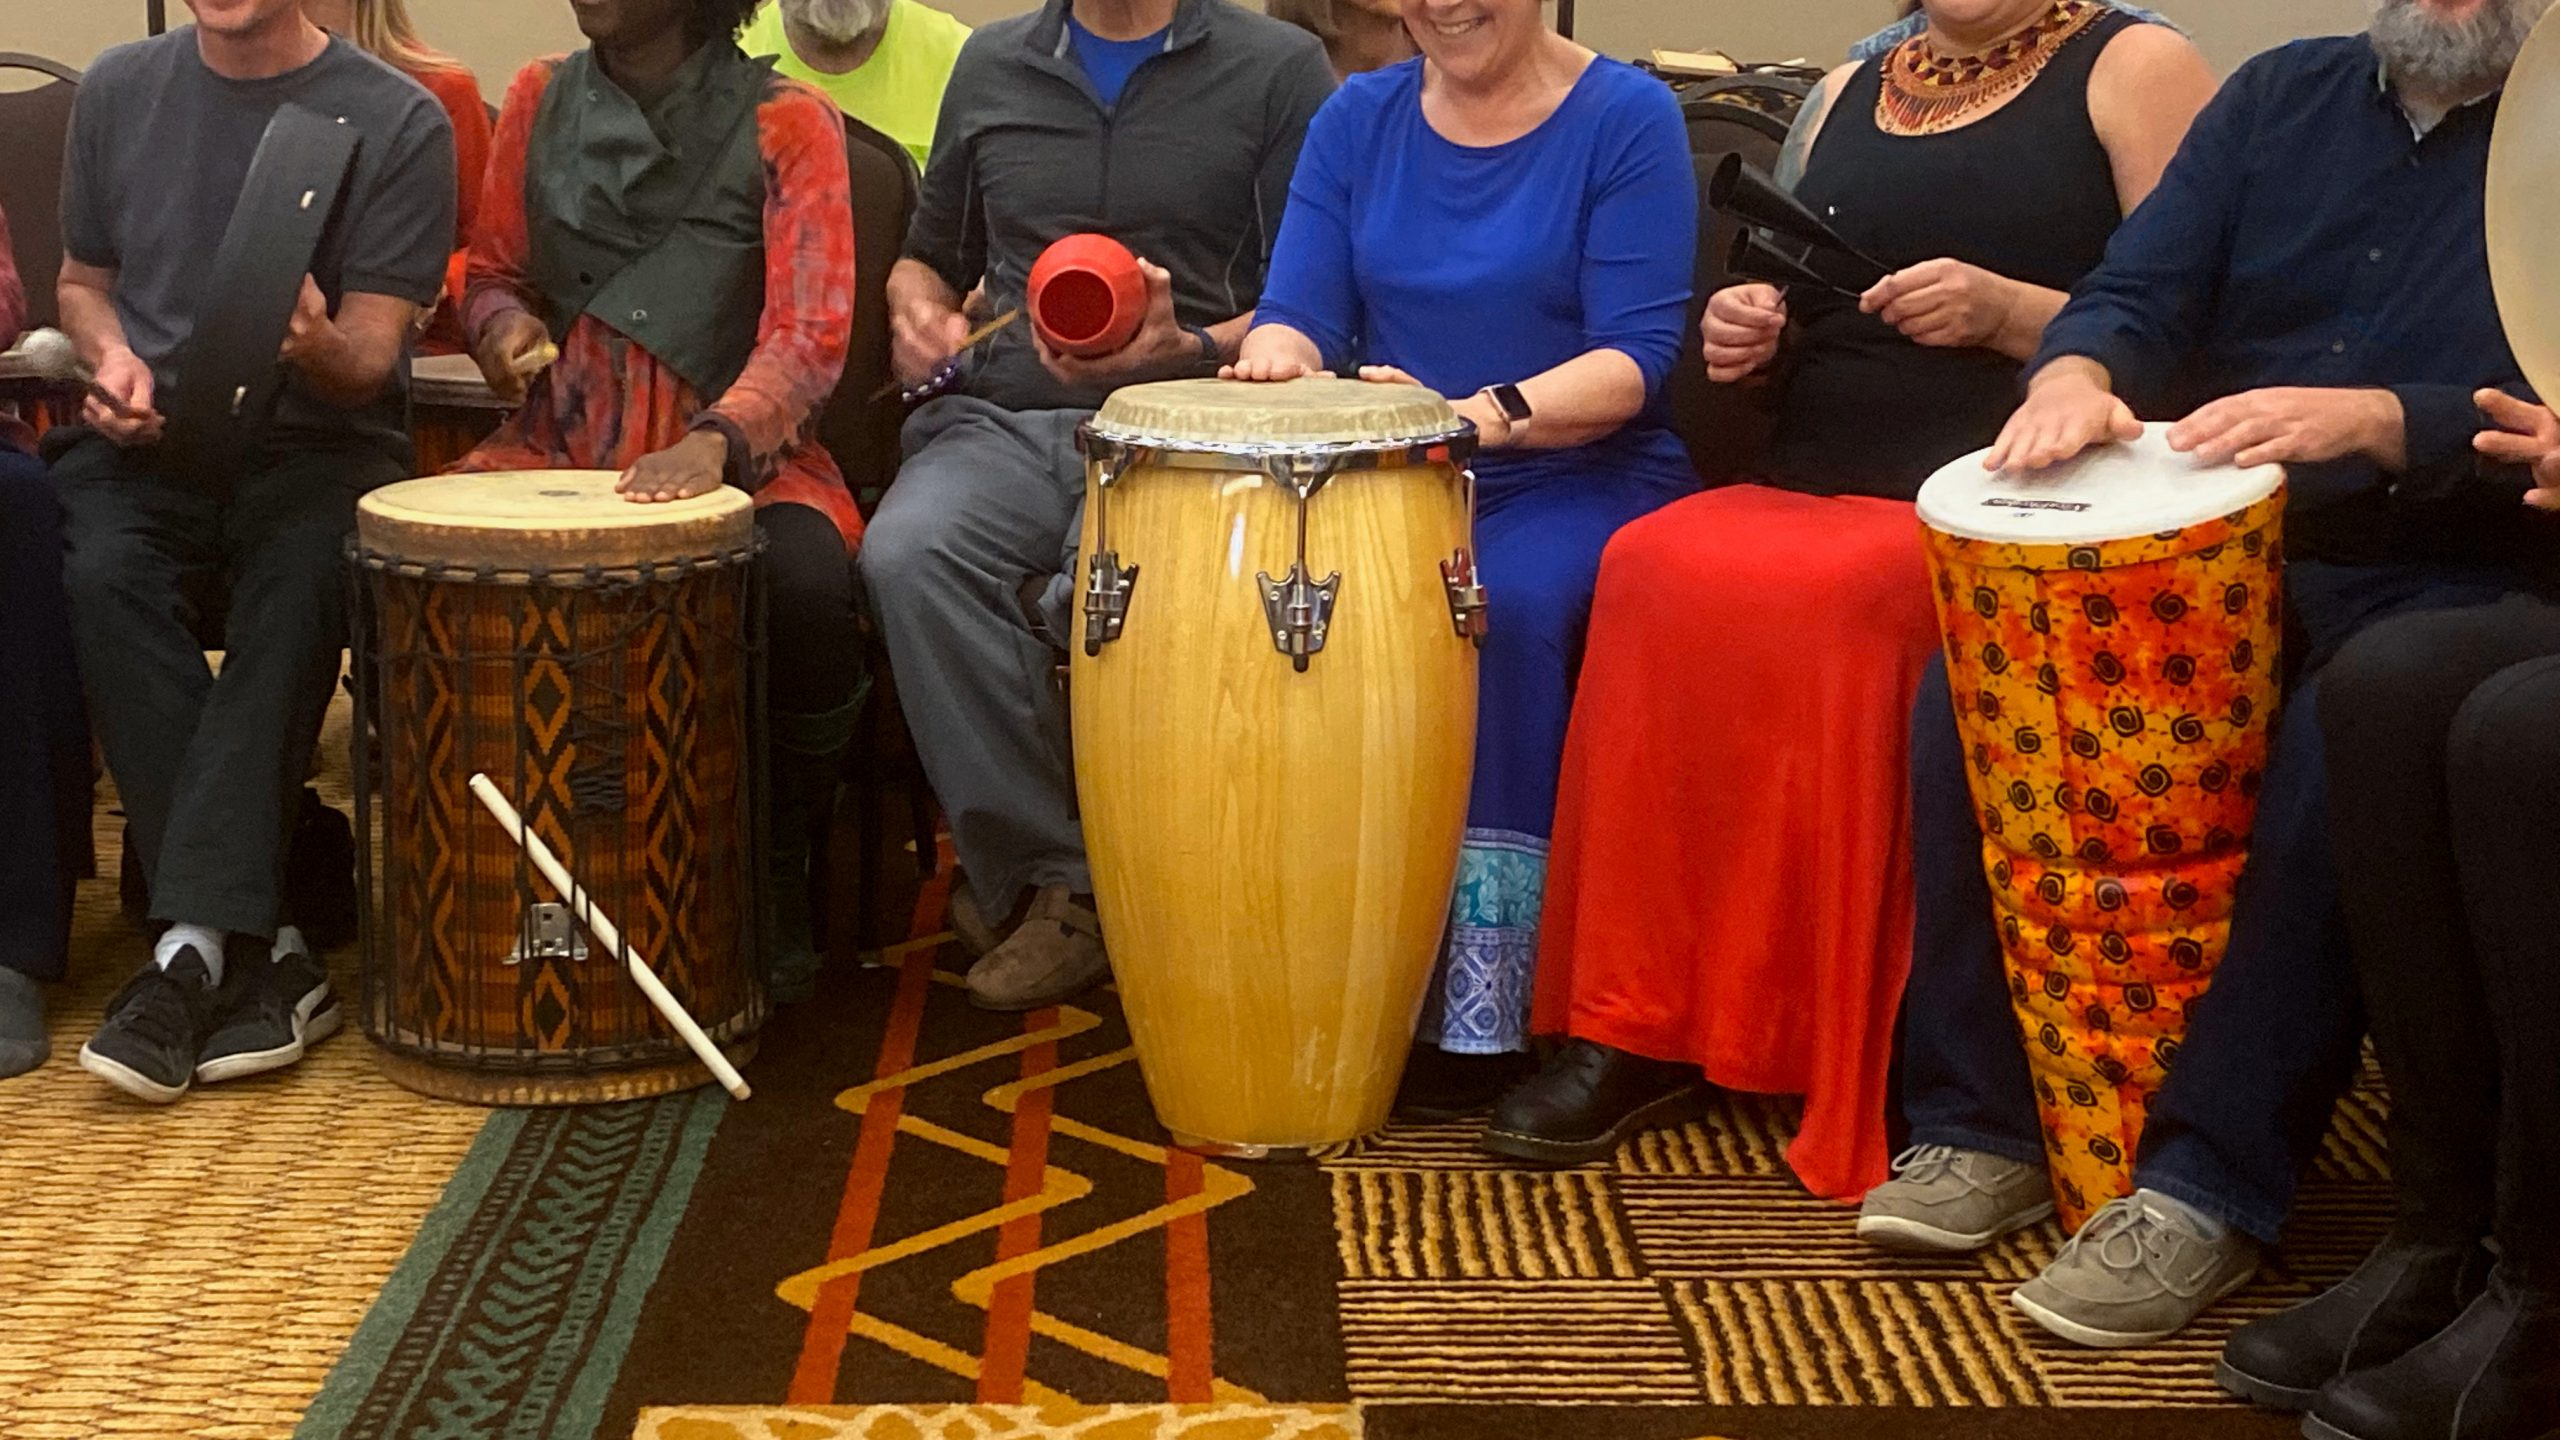 group of people drumming instruments